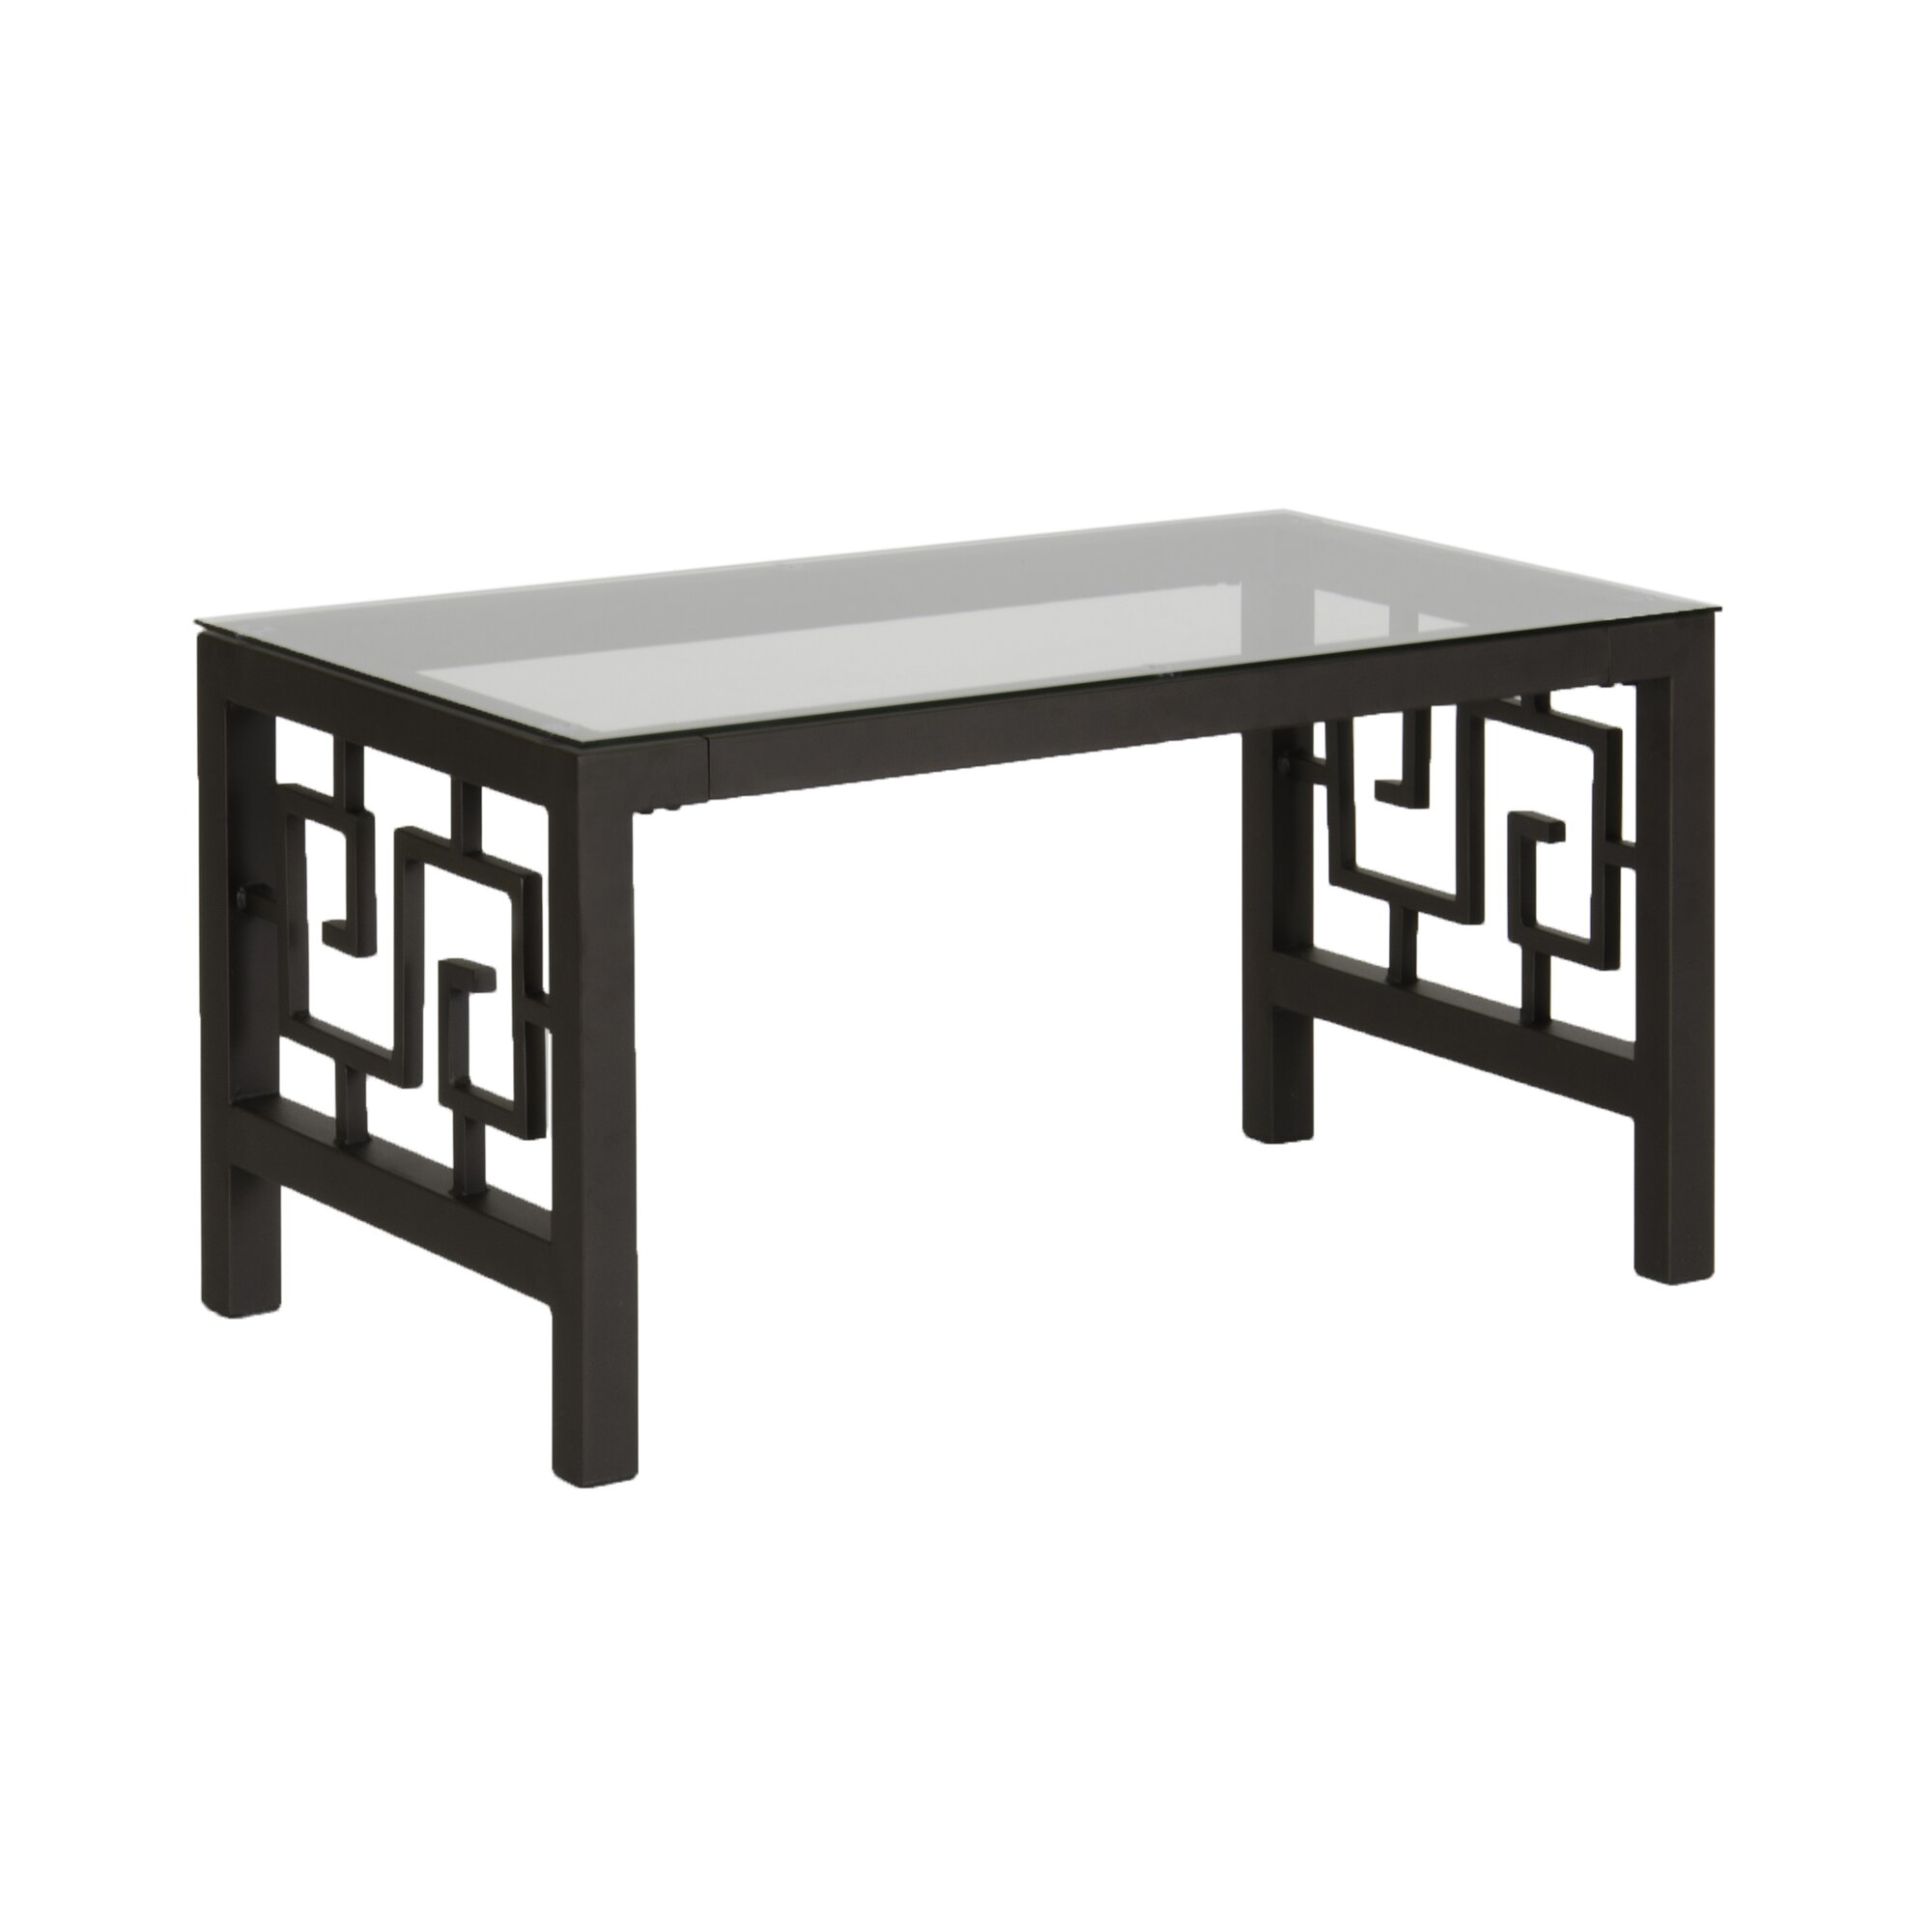 In Style Furnishings Greek Key Coffee Table Set & Reviews